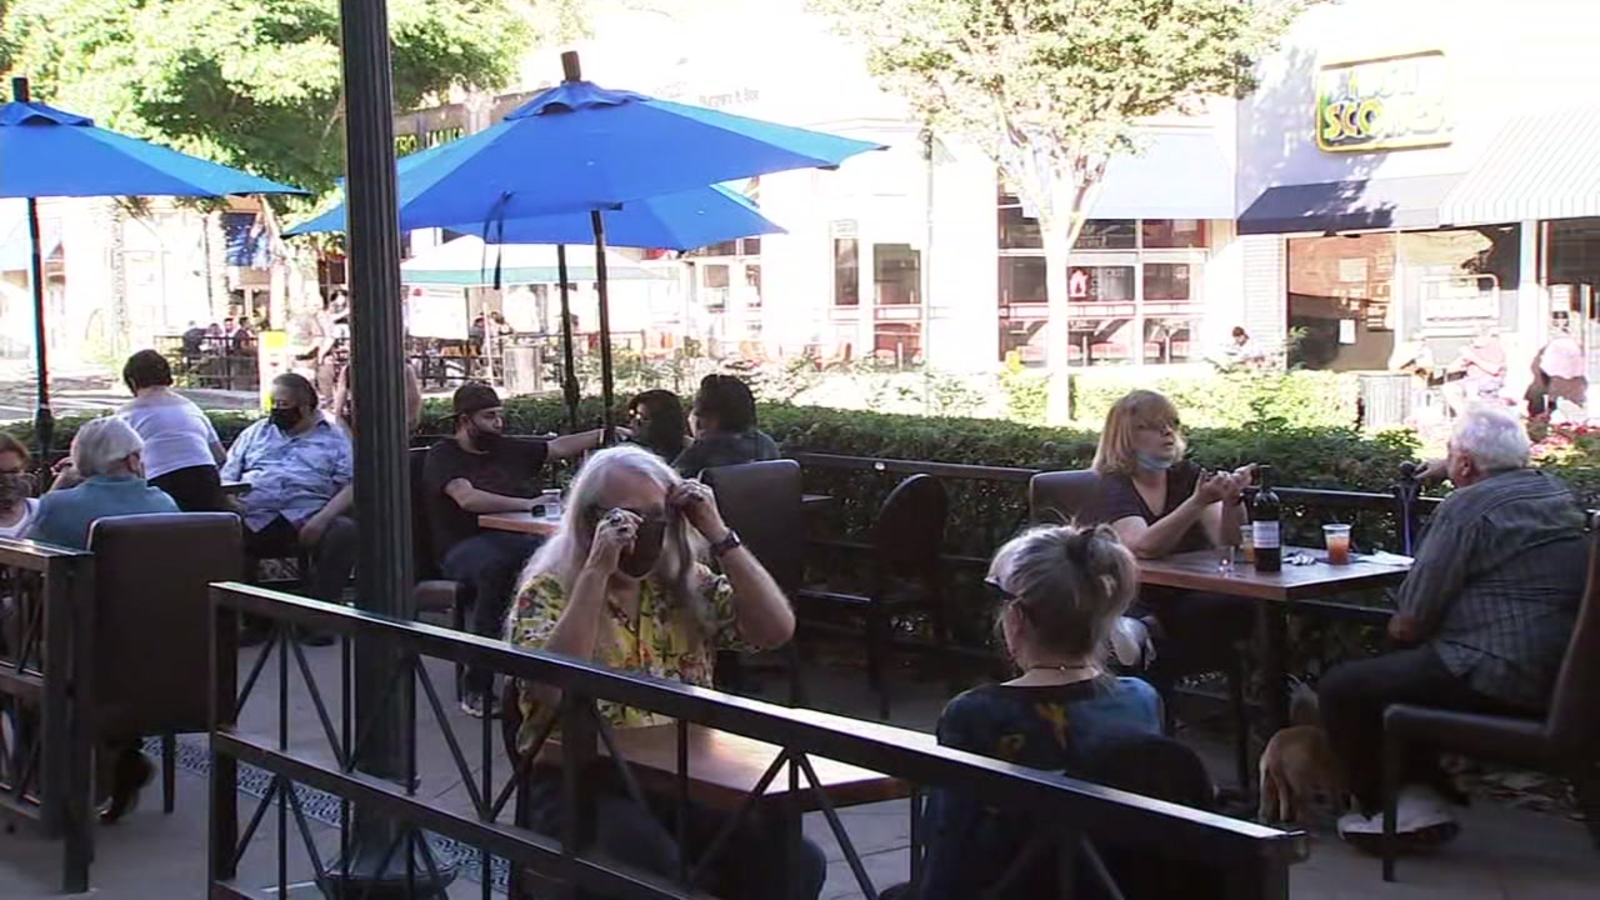 Coronavirus Impact: Some restaurant owners, cities outraged after Alameda County suspends outdoor dining - KGO-TV